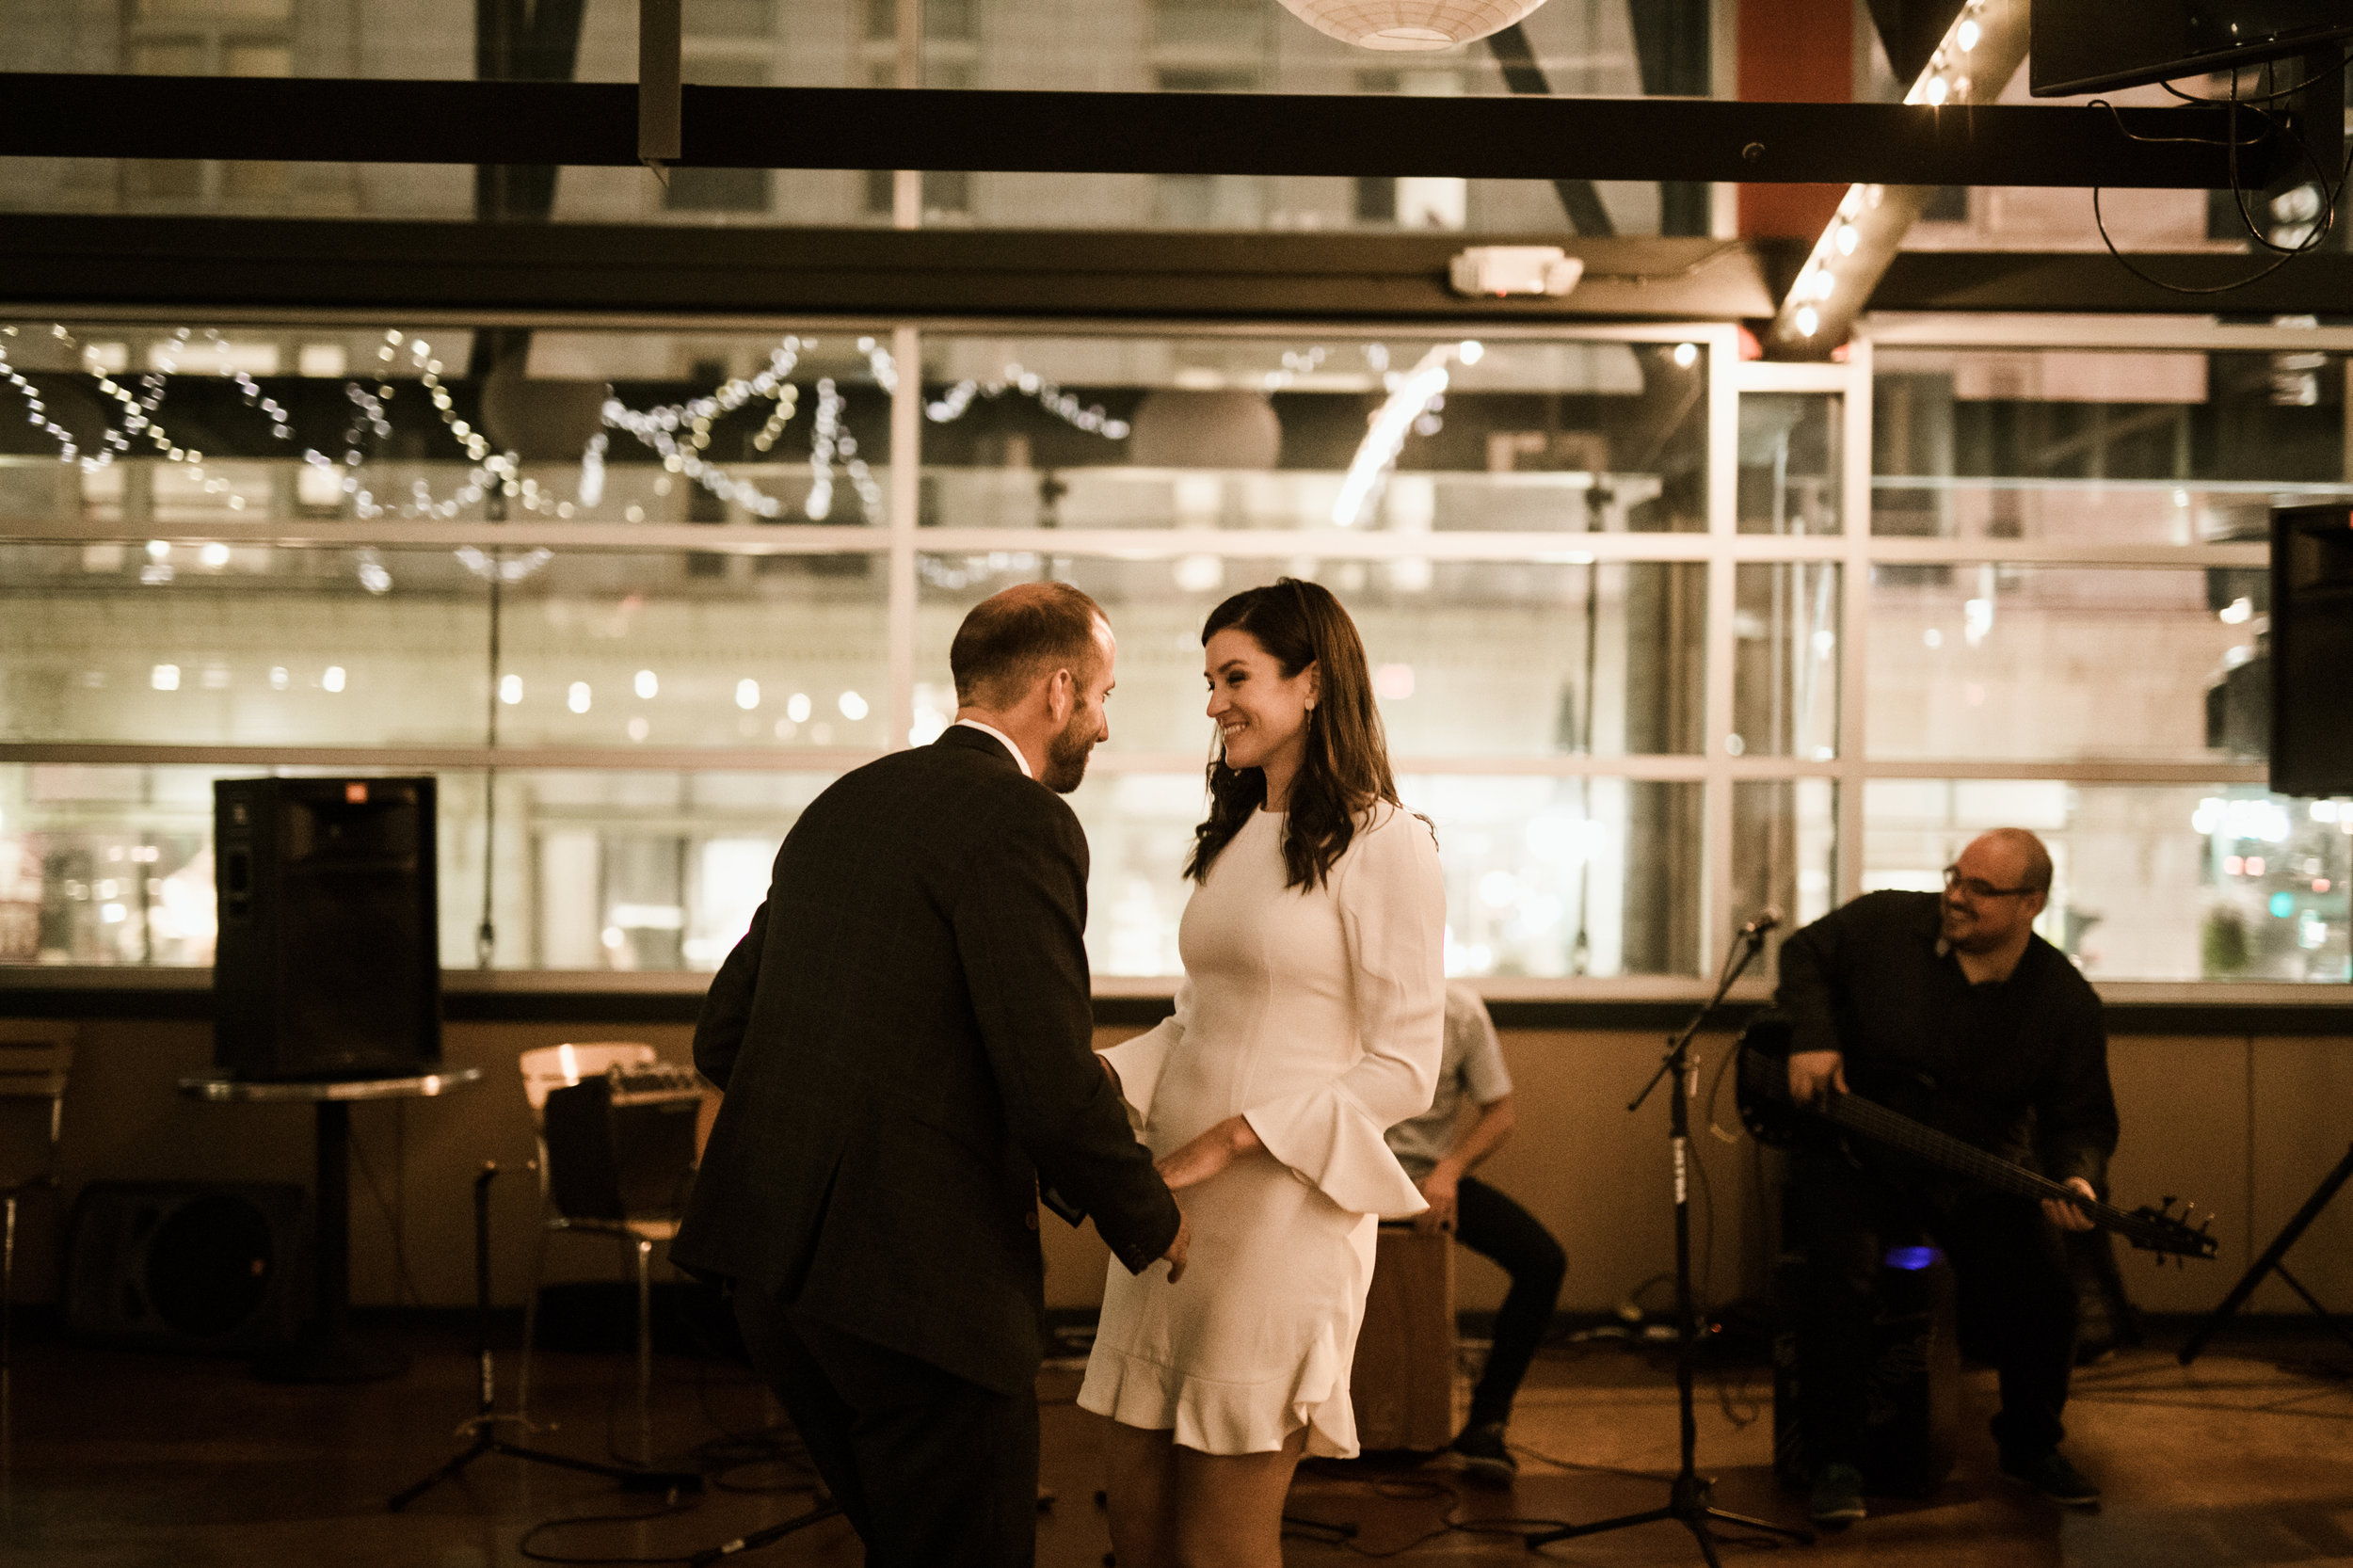 Kentucky Wedding Louisville Wedding Photographer 2018 Crystal Ludwick Photo Louisville Wedding Photographer Kentucky Wedding Photographer (78 of 90).jpg